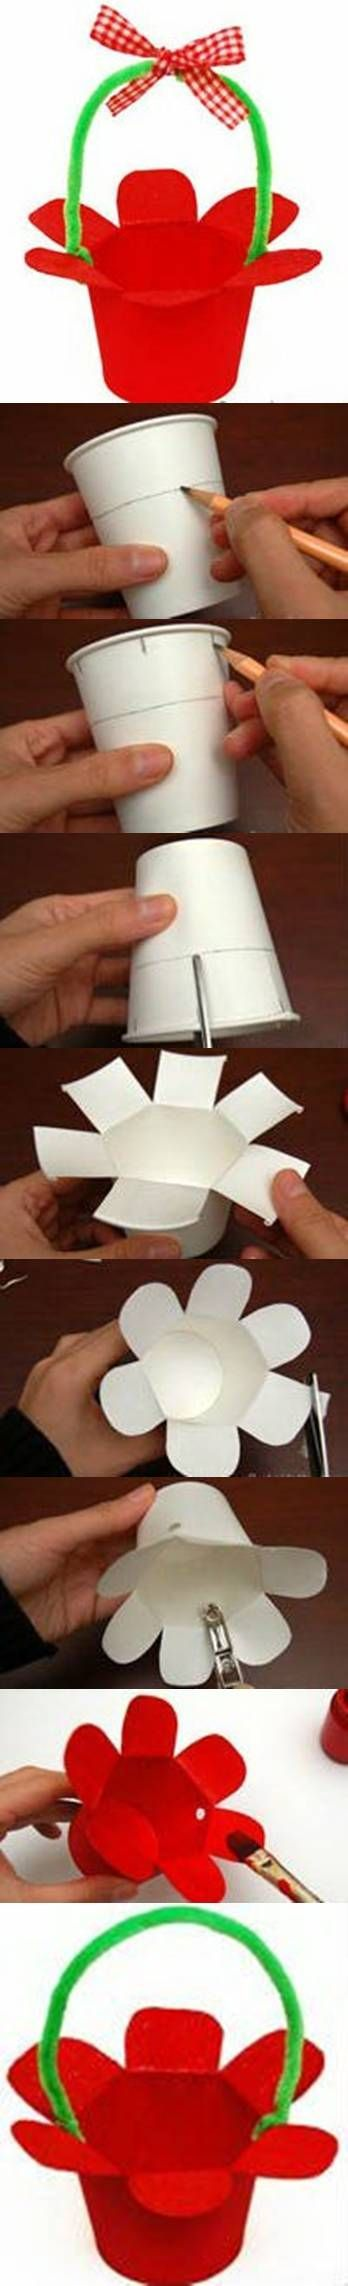 DIY Paper Cup Basketcute Idea For Kids At Easter A Craft Them Or Part Of Their Table Setting